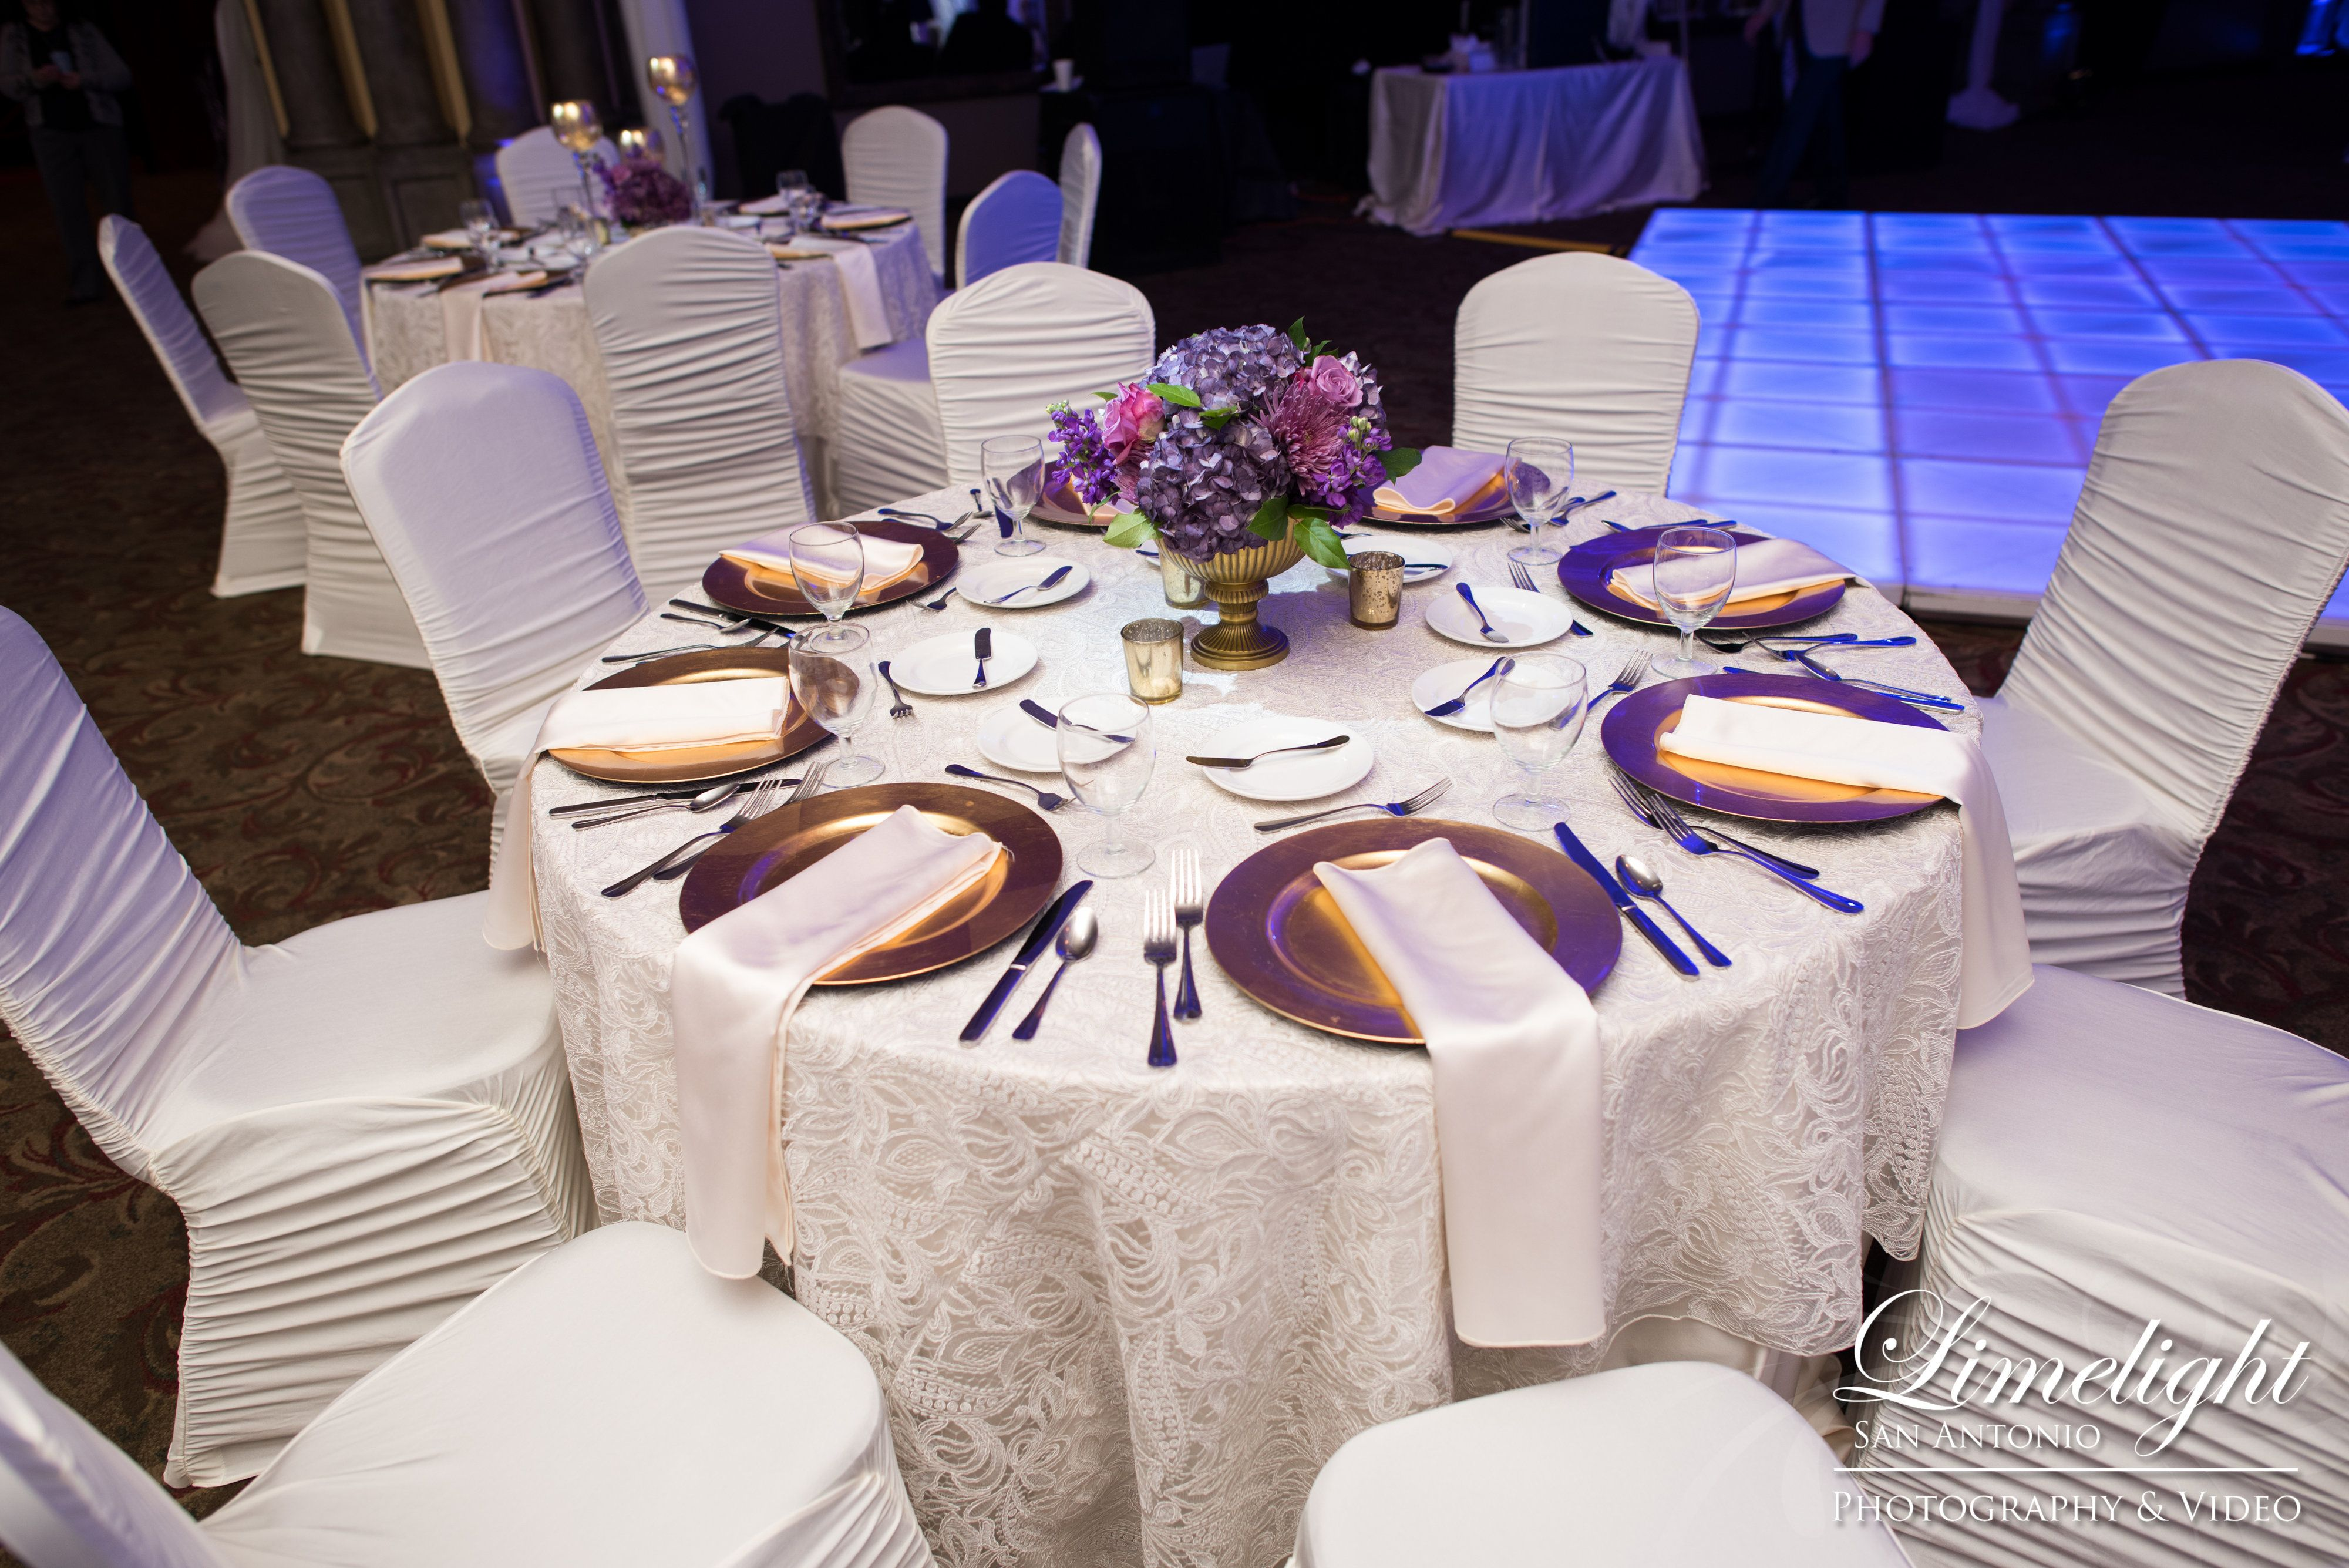 Guest Table Designed By Events By Reese With White Spandex Chair Covers Lace Linens With Gold And Purple Centerpieces Catering Wedding Reception Decorations